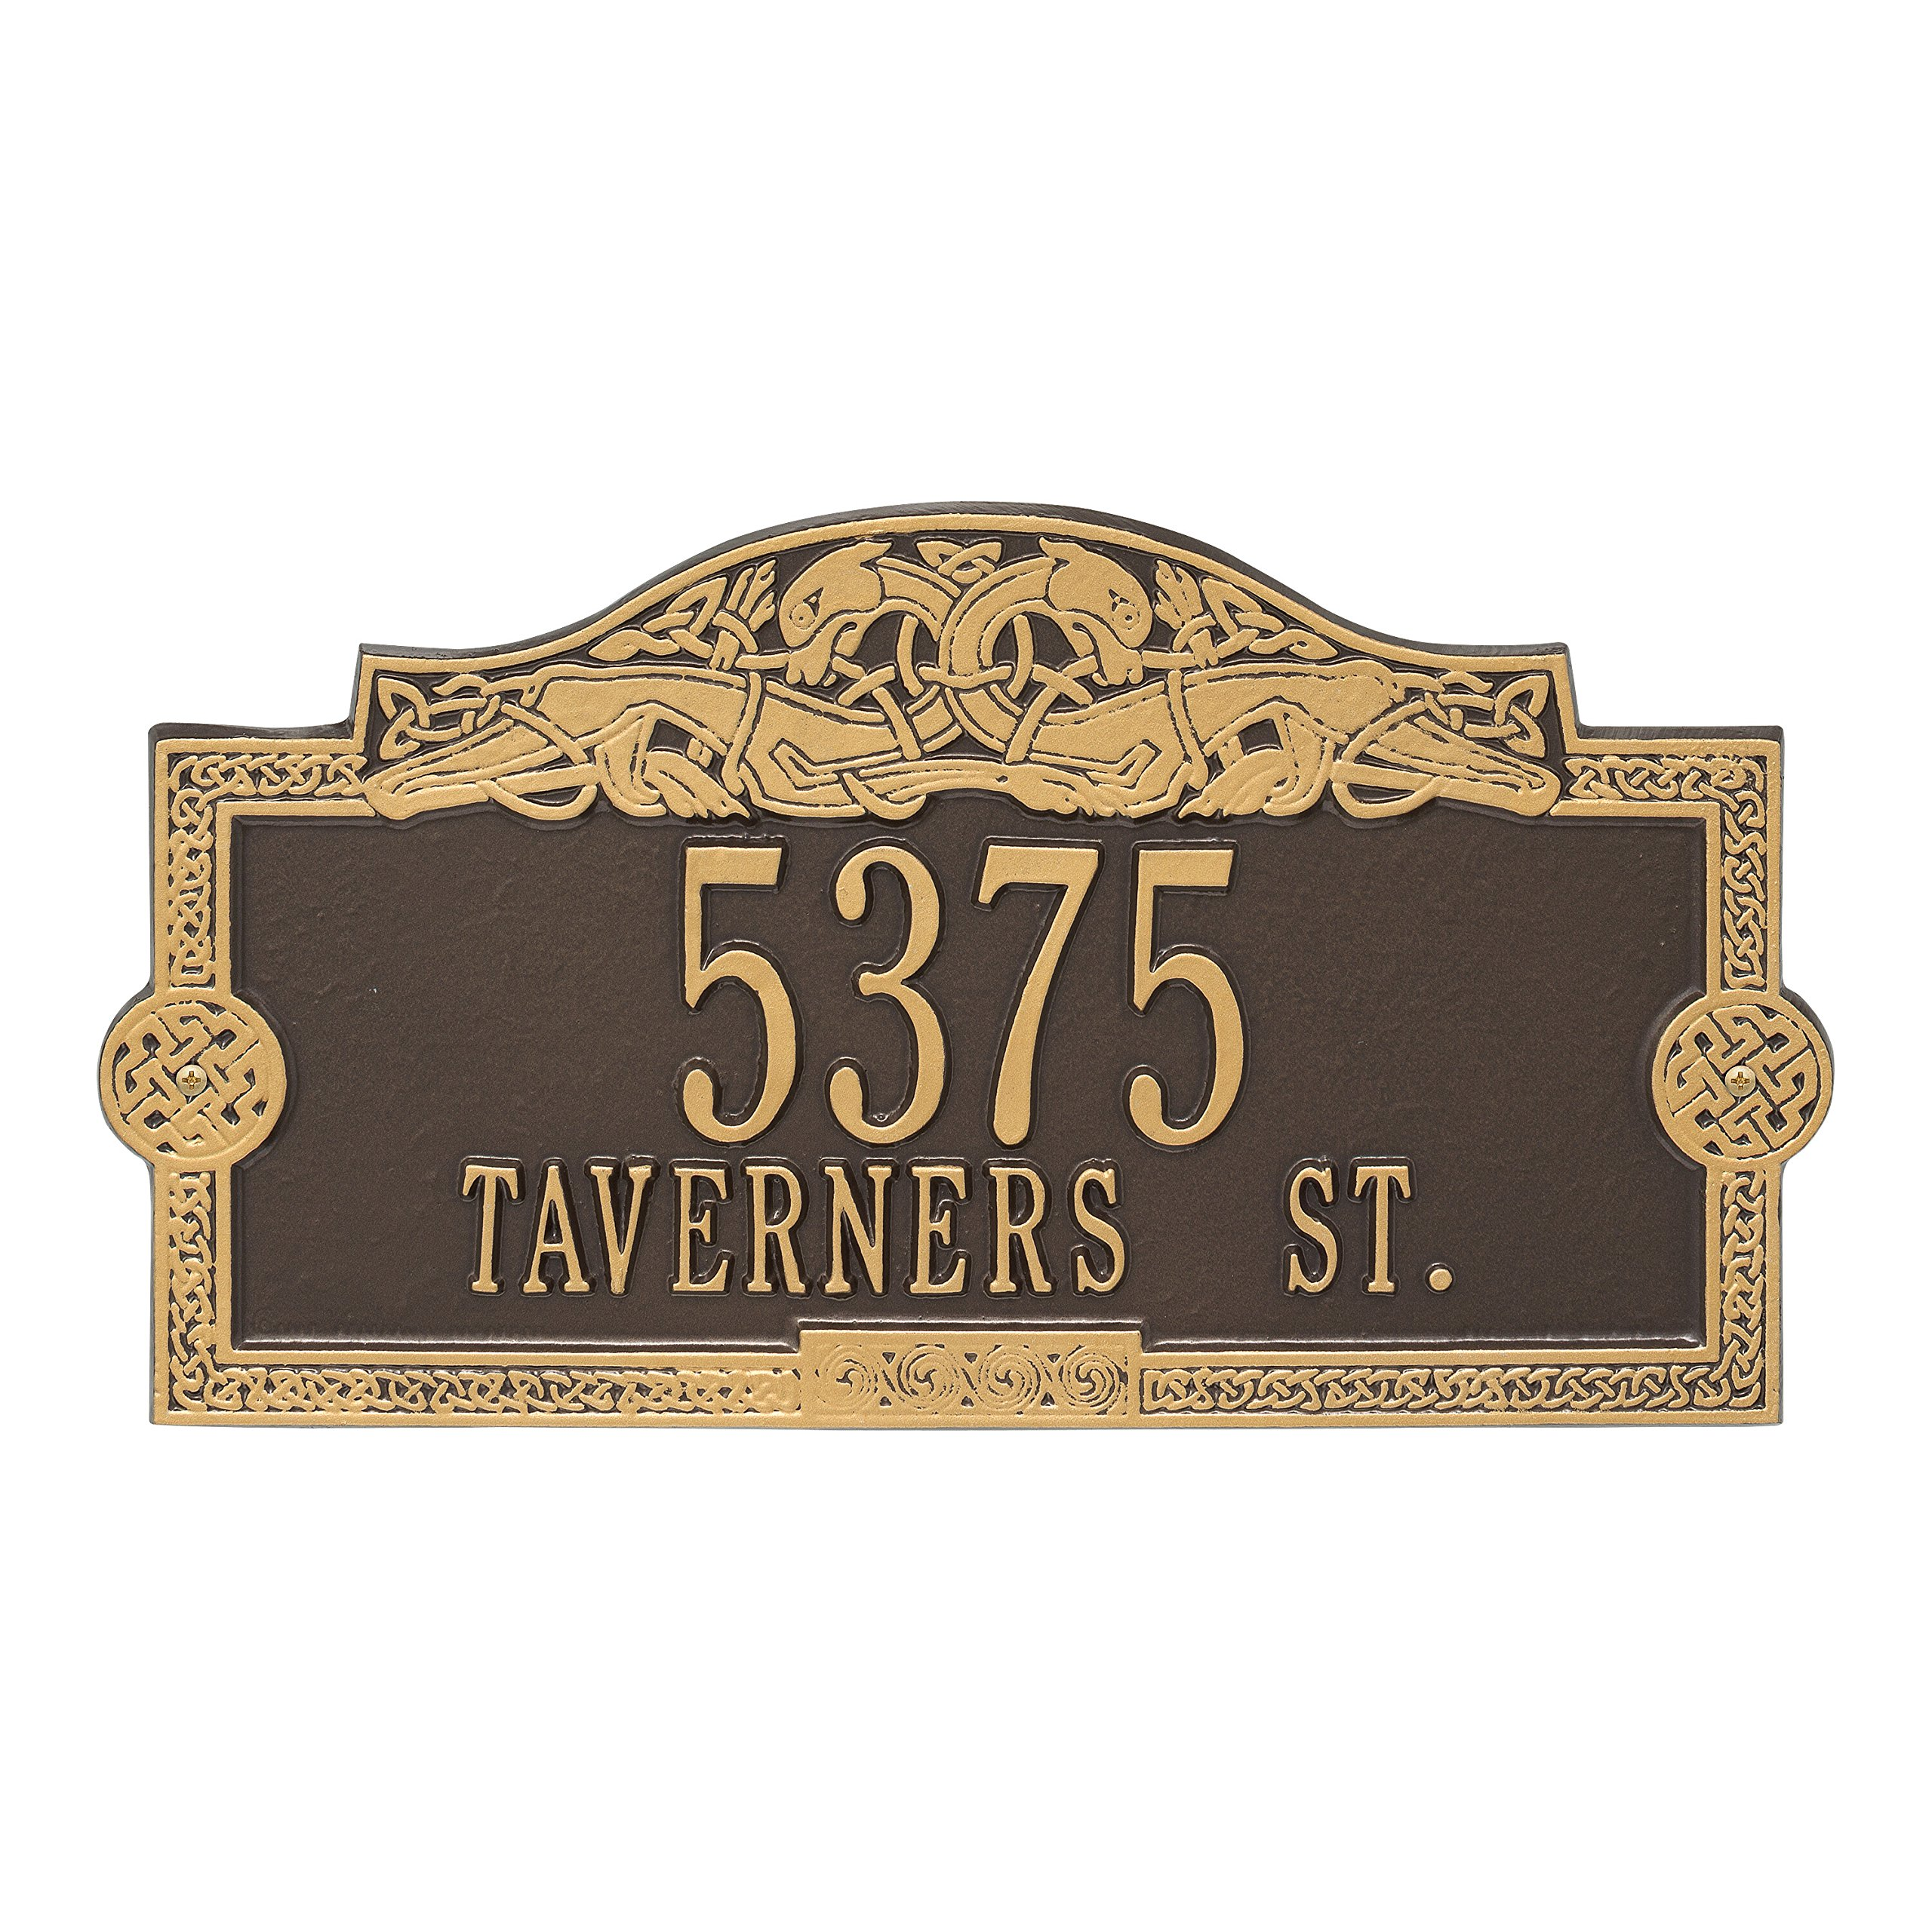 Whitehall Personalized Indoor/Outdoor Cast Irish Celtic Dragon Address Plaque Sign with House Number and Street Name (Bronze Gold)